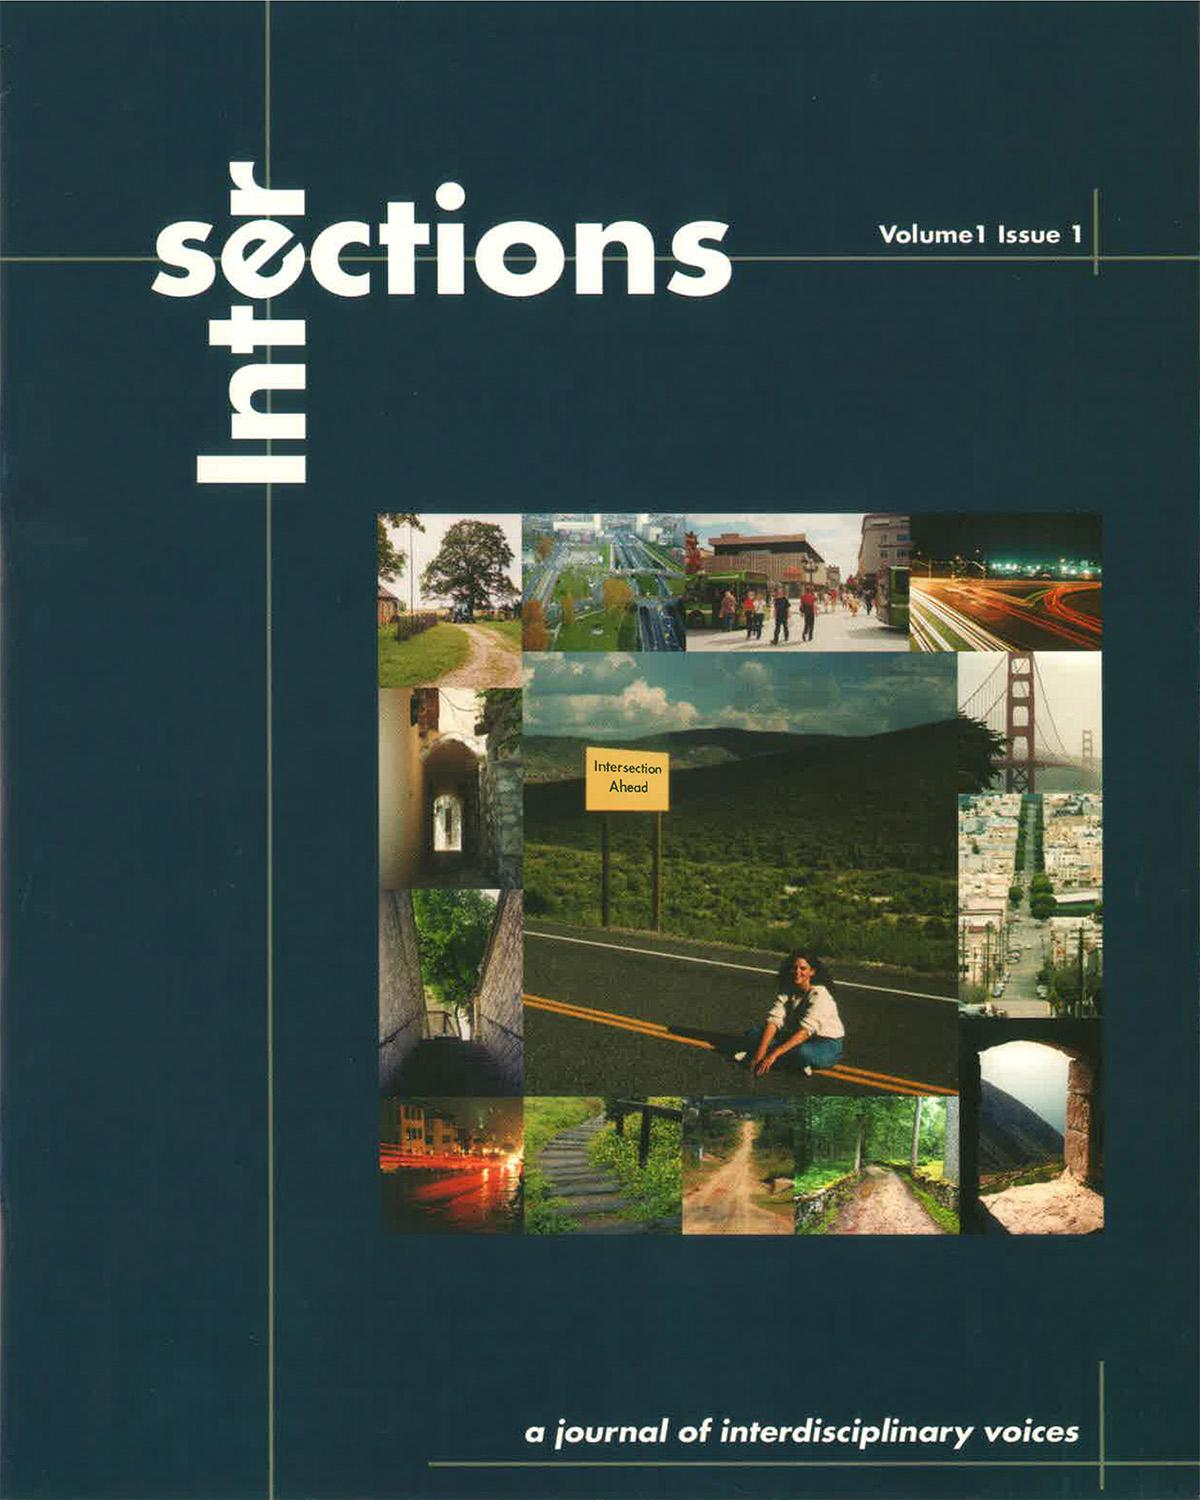 Intersections Volume 1 Issue 1